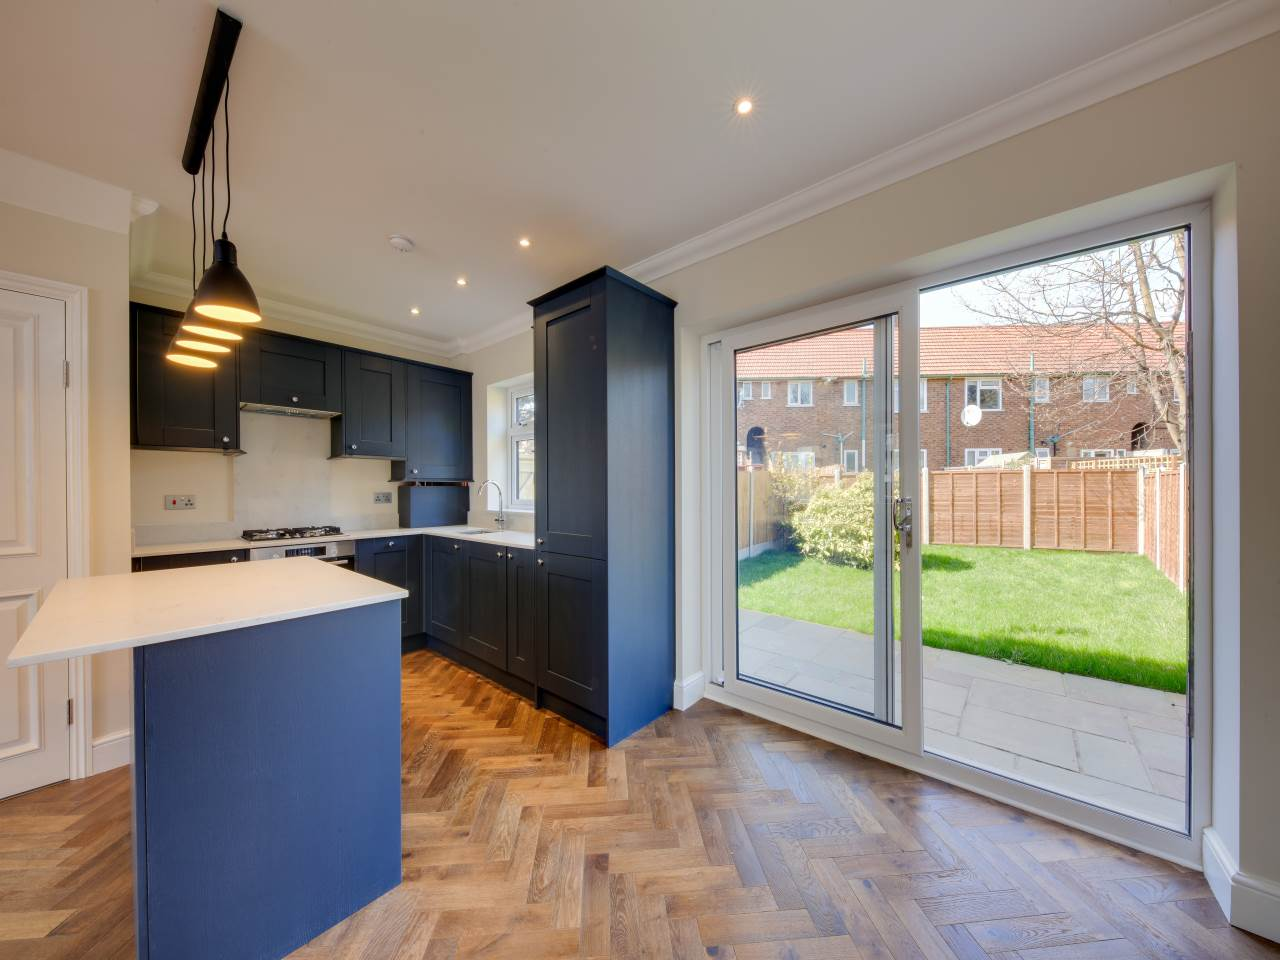 3 bed house for sale in Shernhall Street , Walthamstow  5